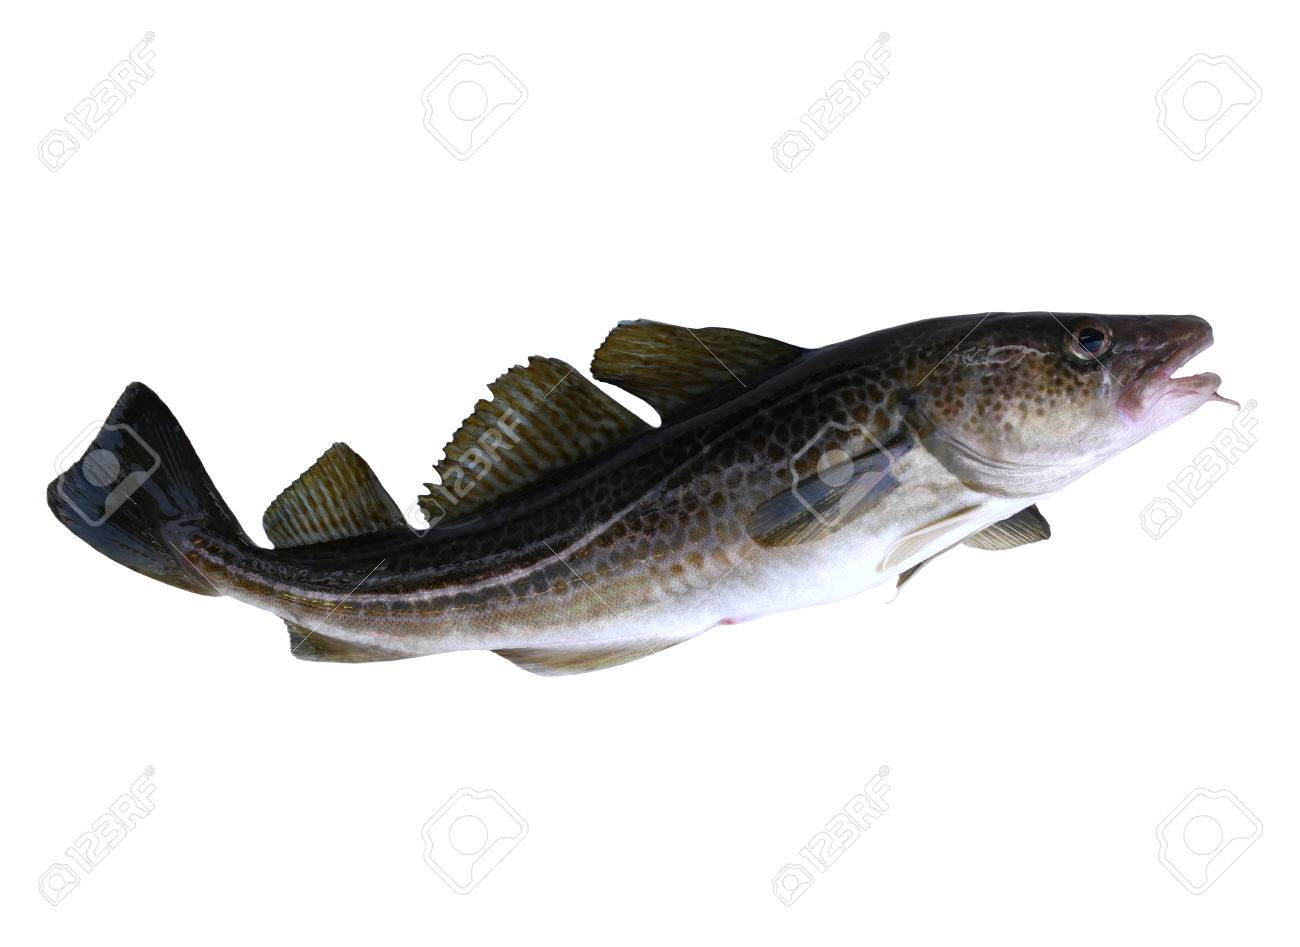 big cod fish on a white background - 33015615